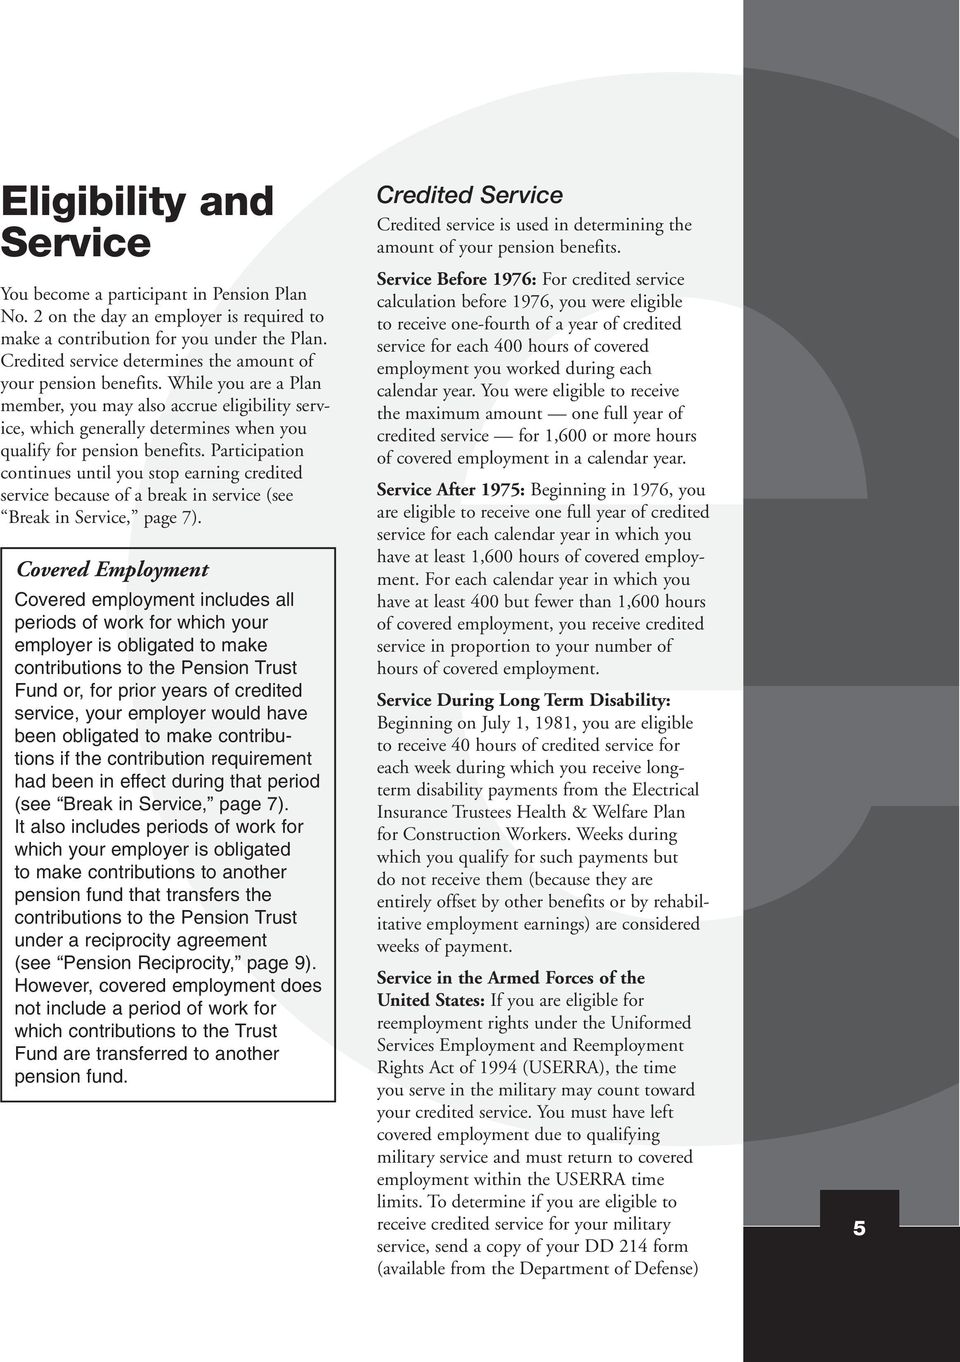 Participation continues until you stop earning credited service because of a break in service (see Break in Service, page 7).